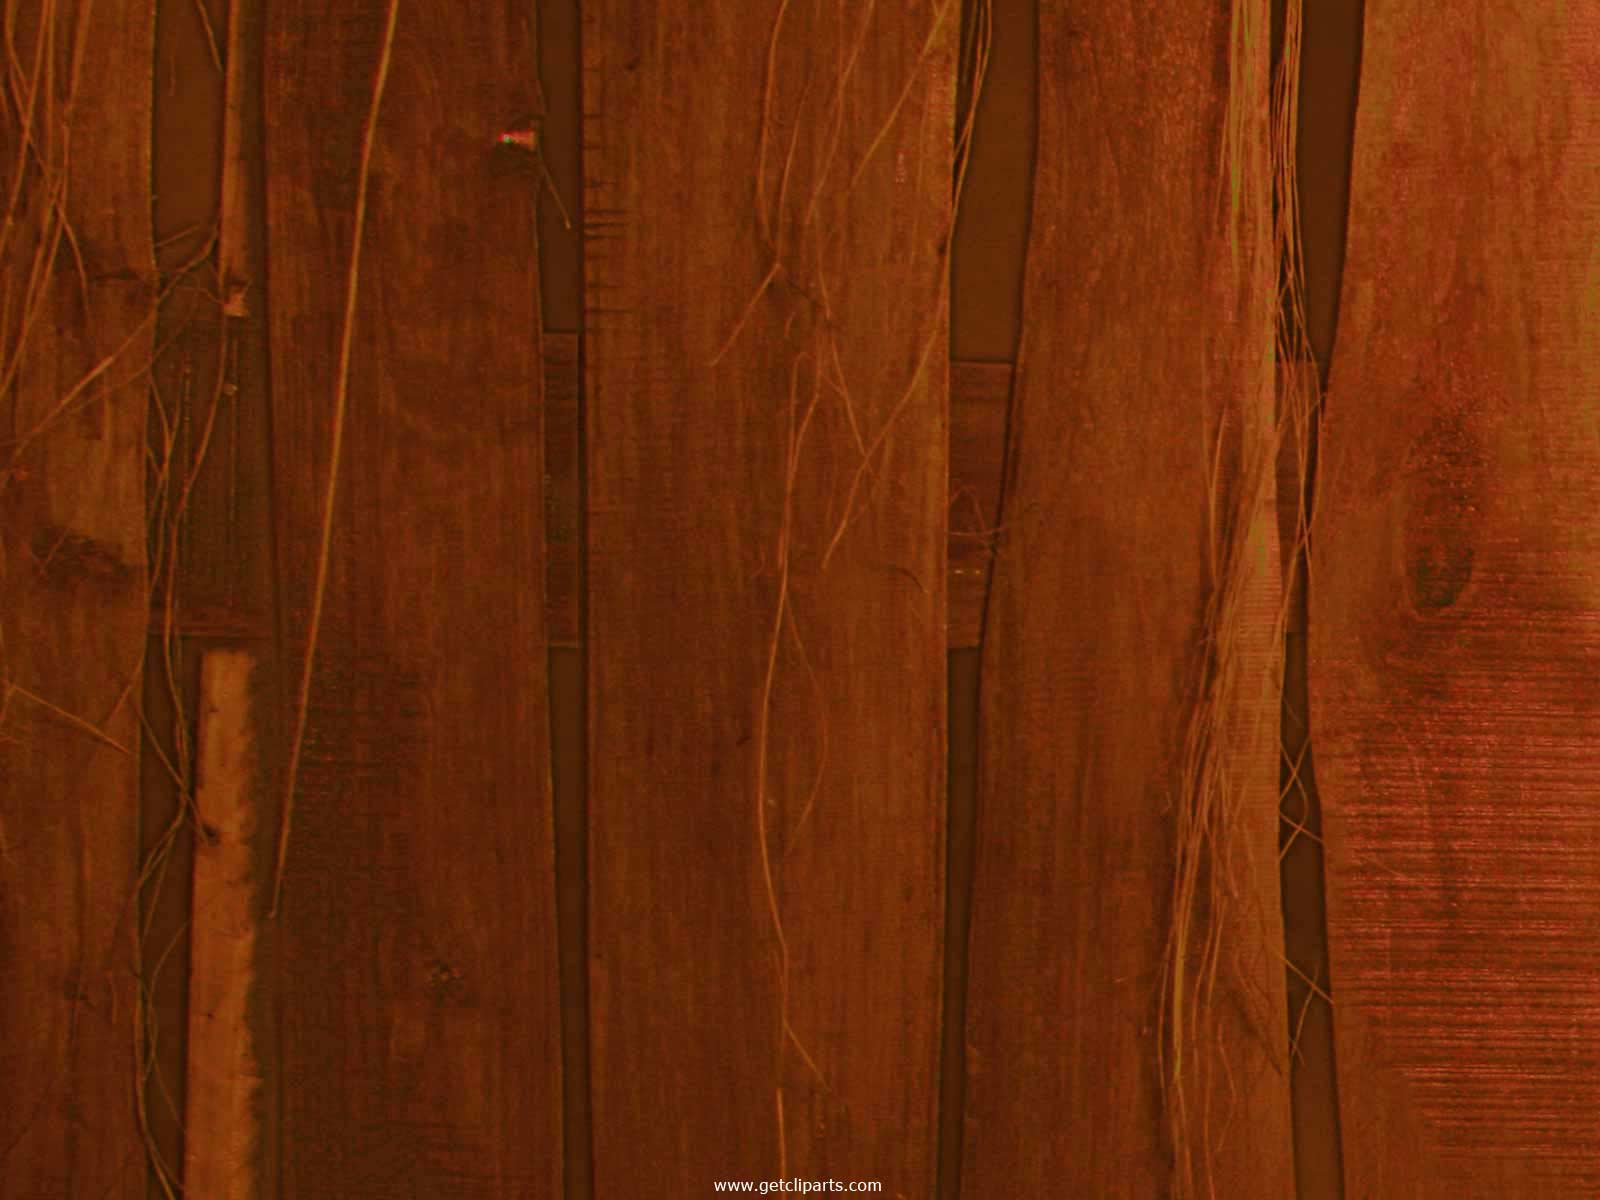 wooden-texture-background-Google-Search-wallpaper-wpc90010778